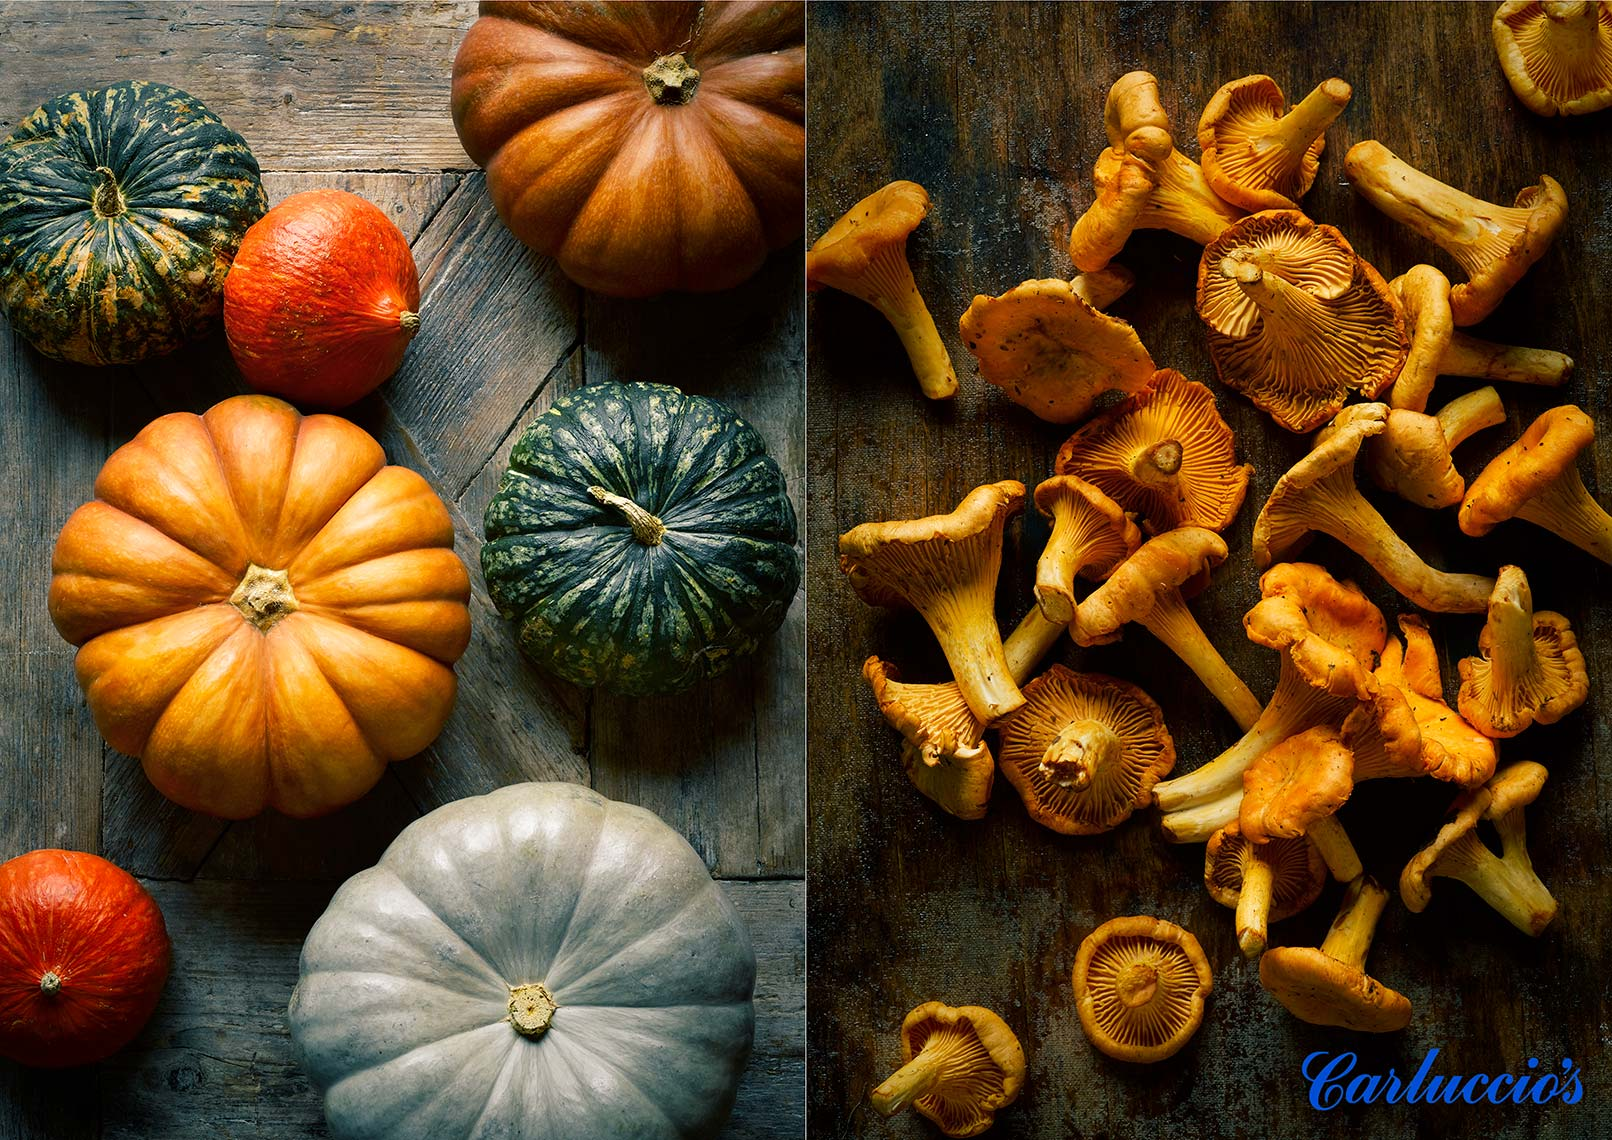 Carluccios-autumn-Pumpkins-and-mushrooms